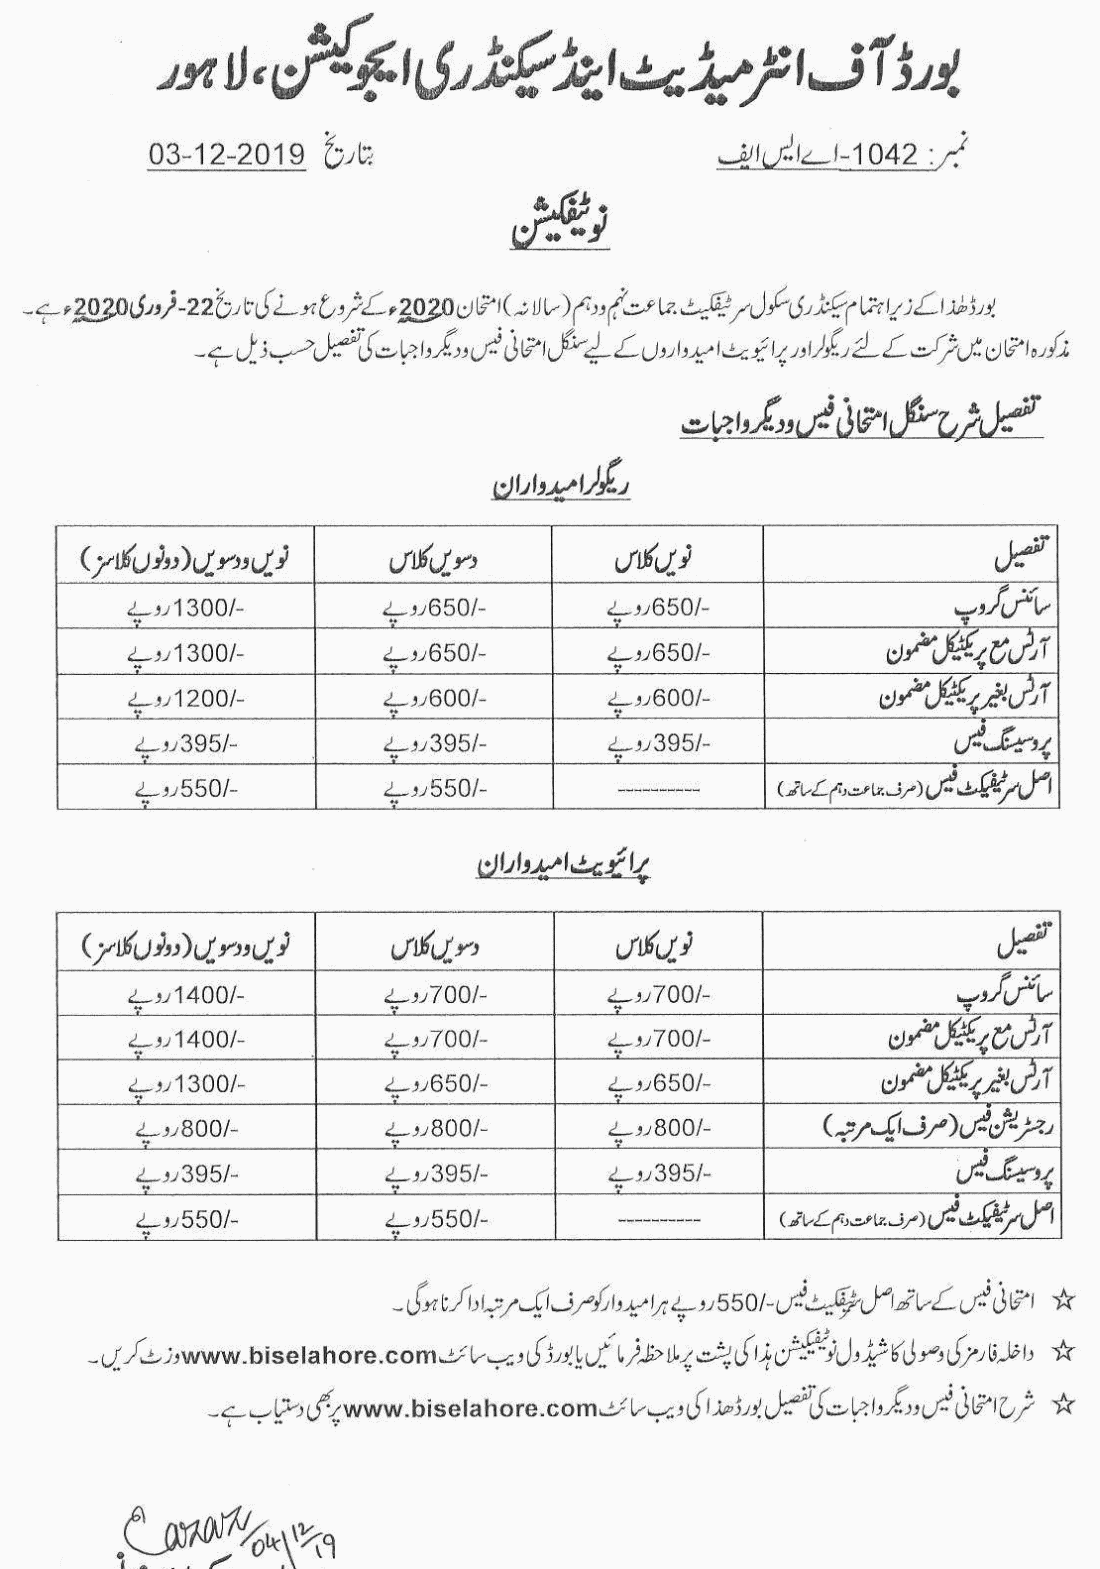 lahore-board-ssc-exam-schedule-2020-page2